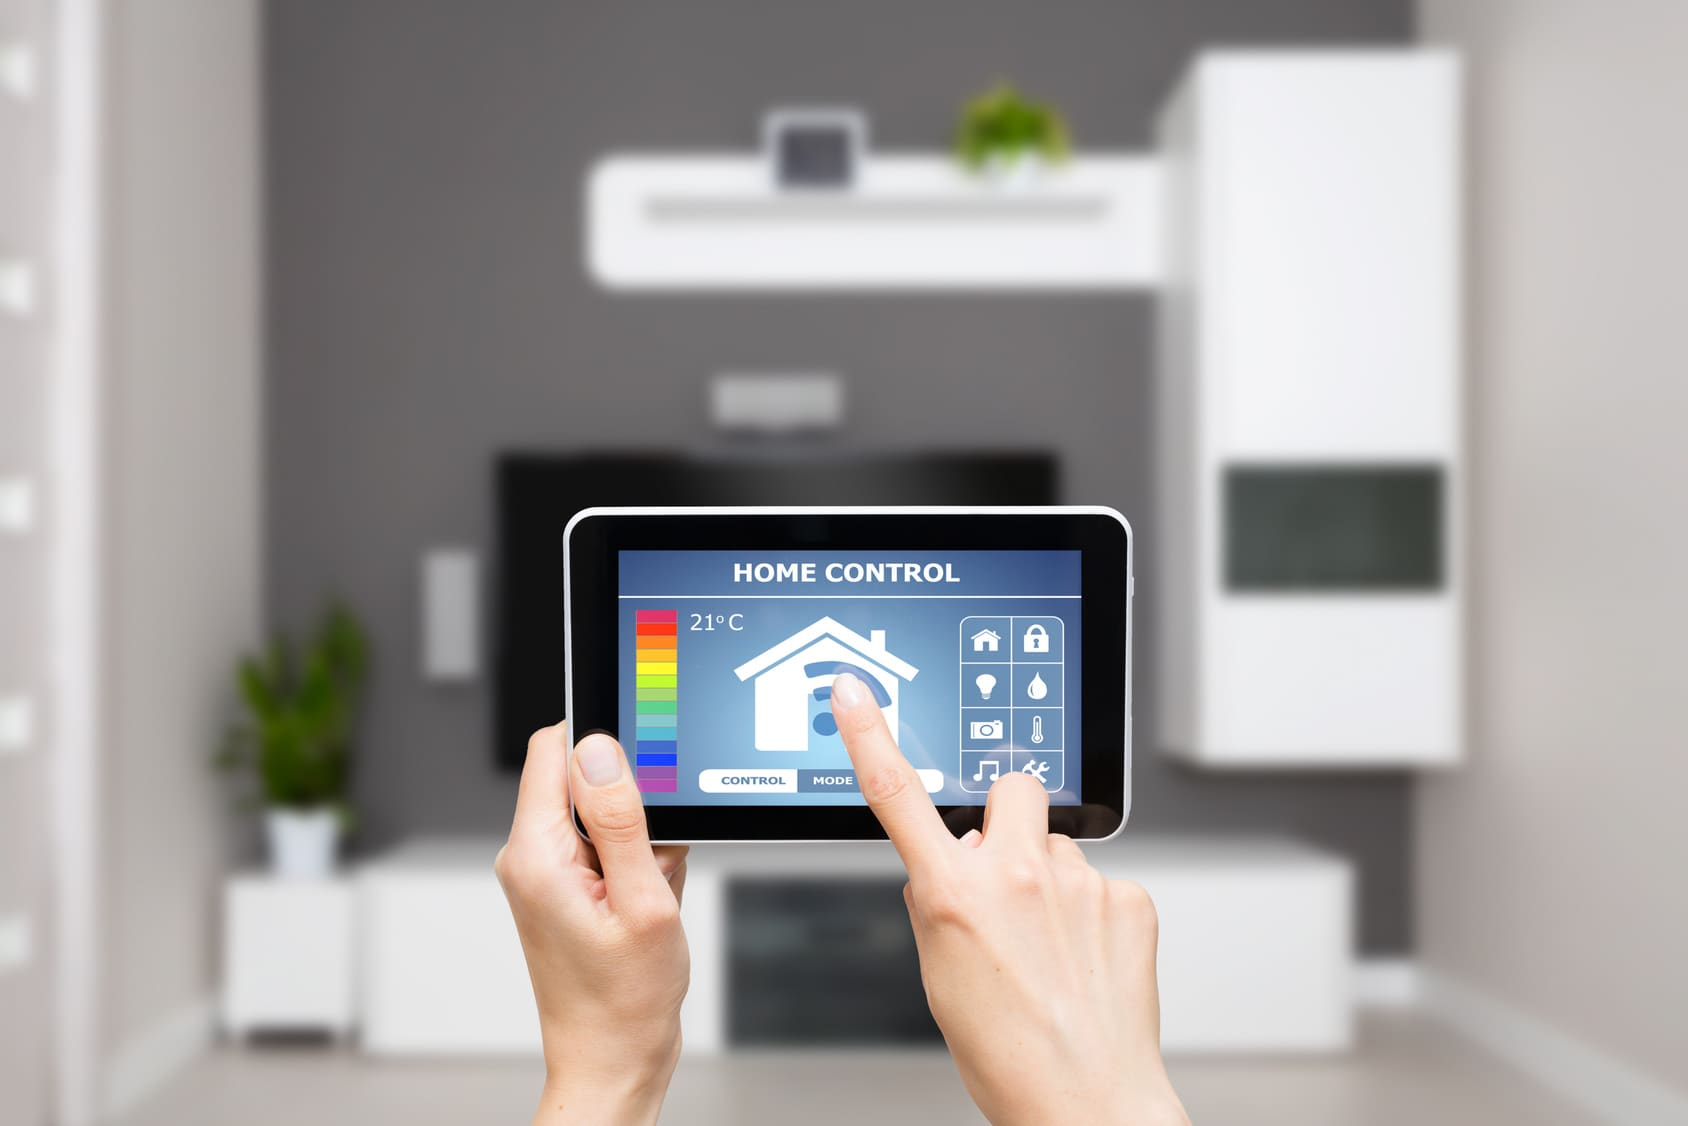 Smart home thermostat image